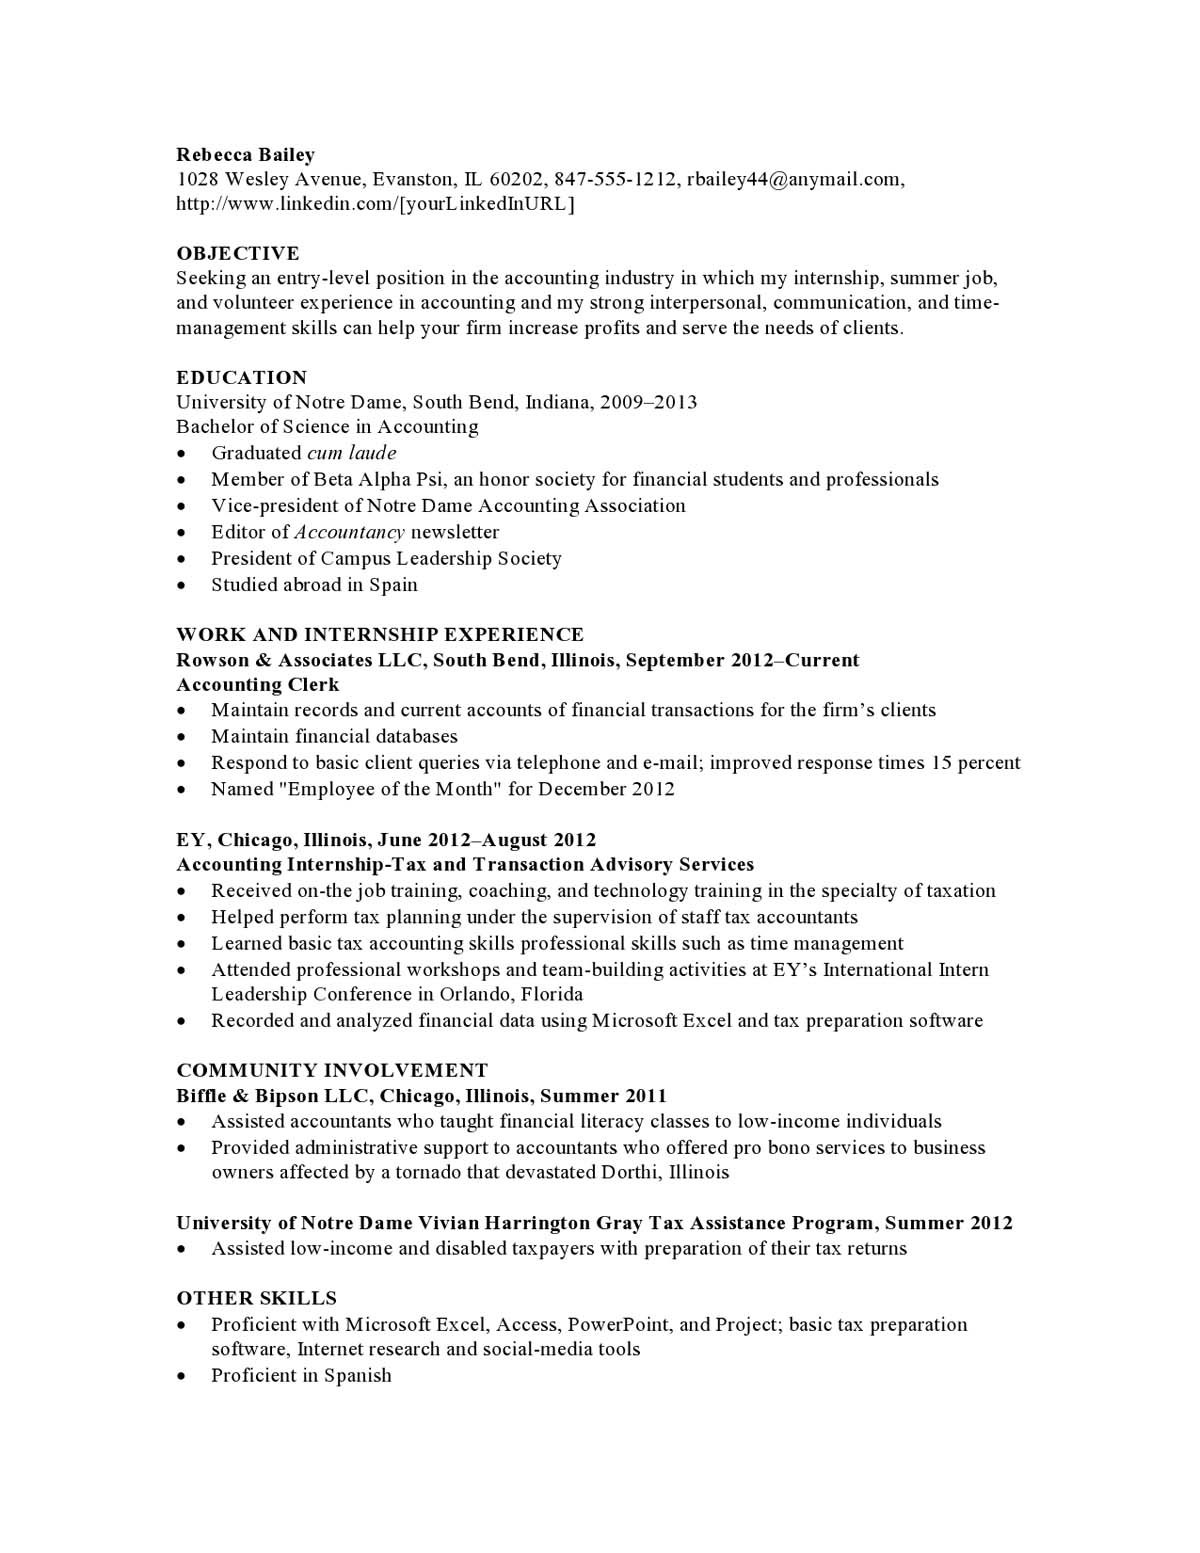 resume samples templates examples vault sample for work abroad crescoact19 bus driver Resume Resume Sample For Work Abroad